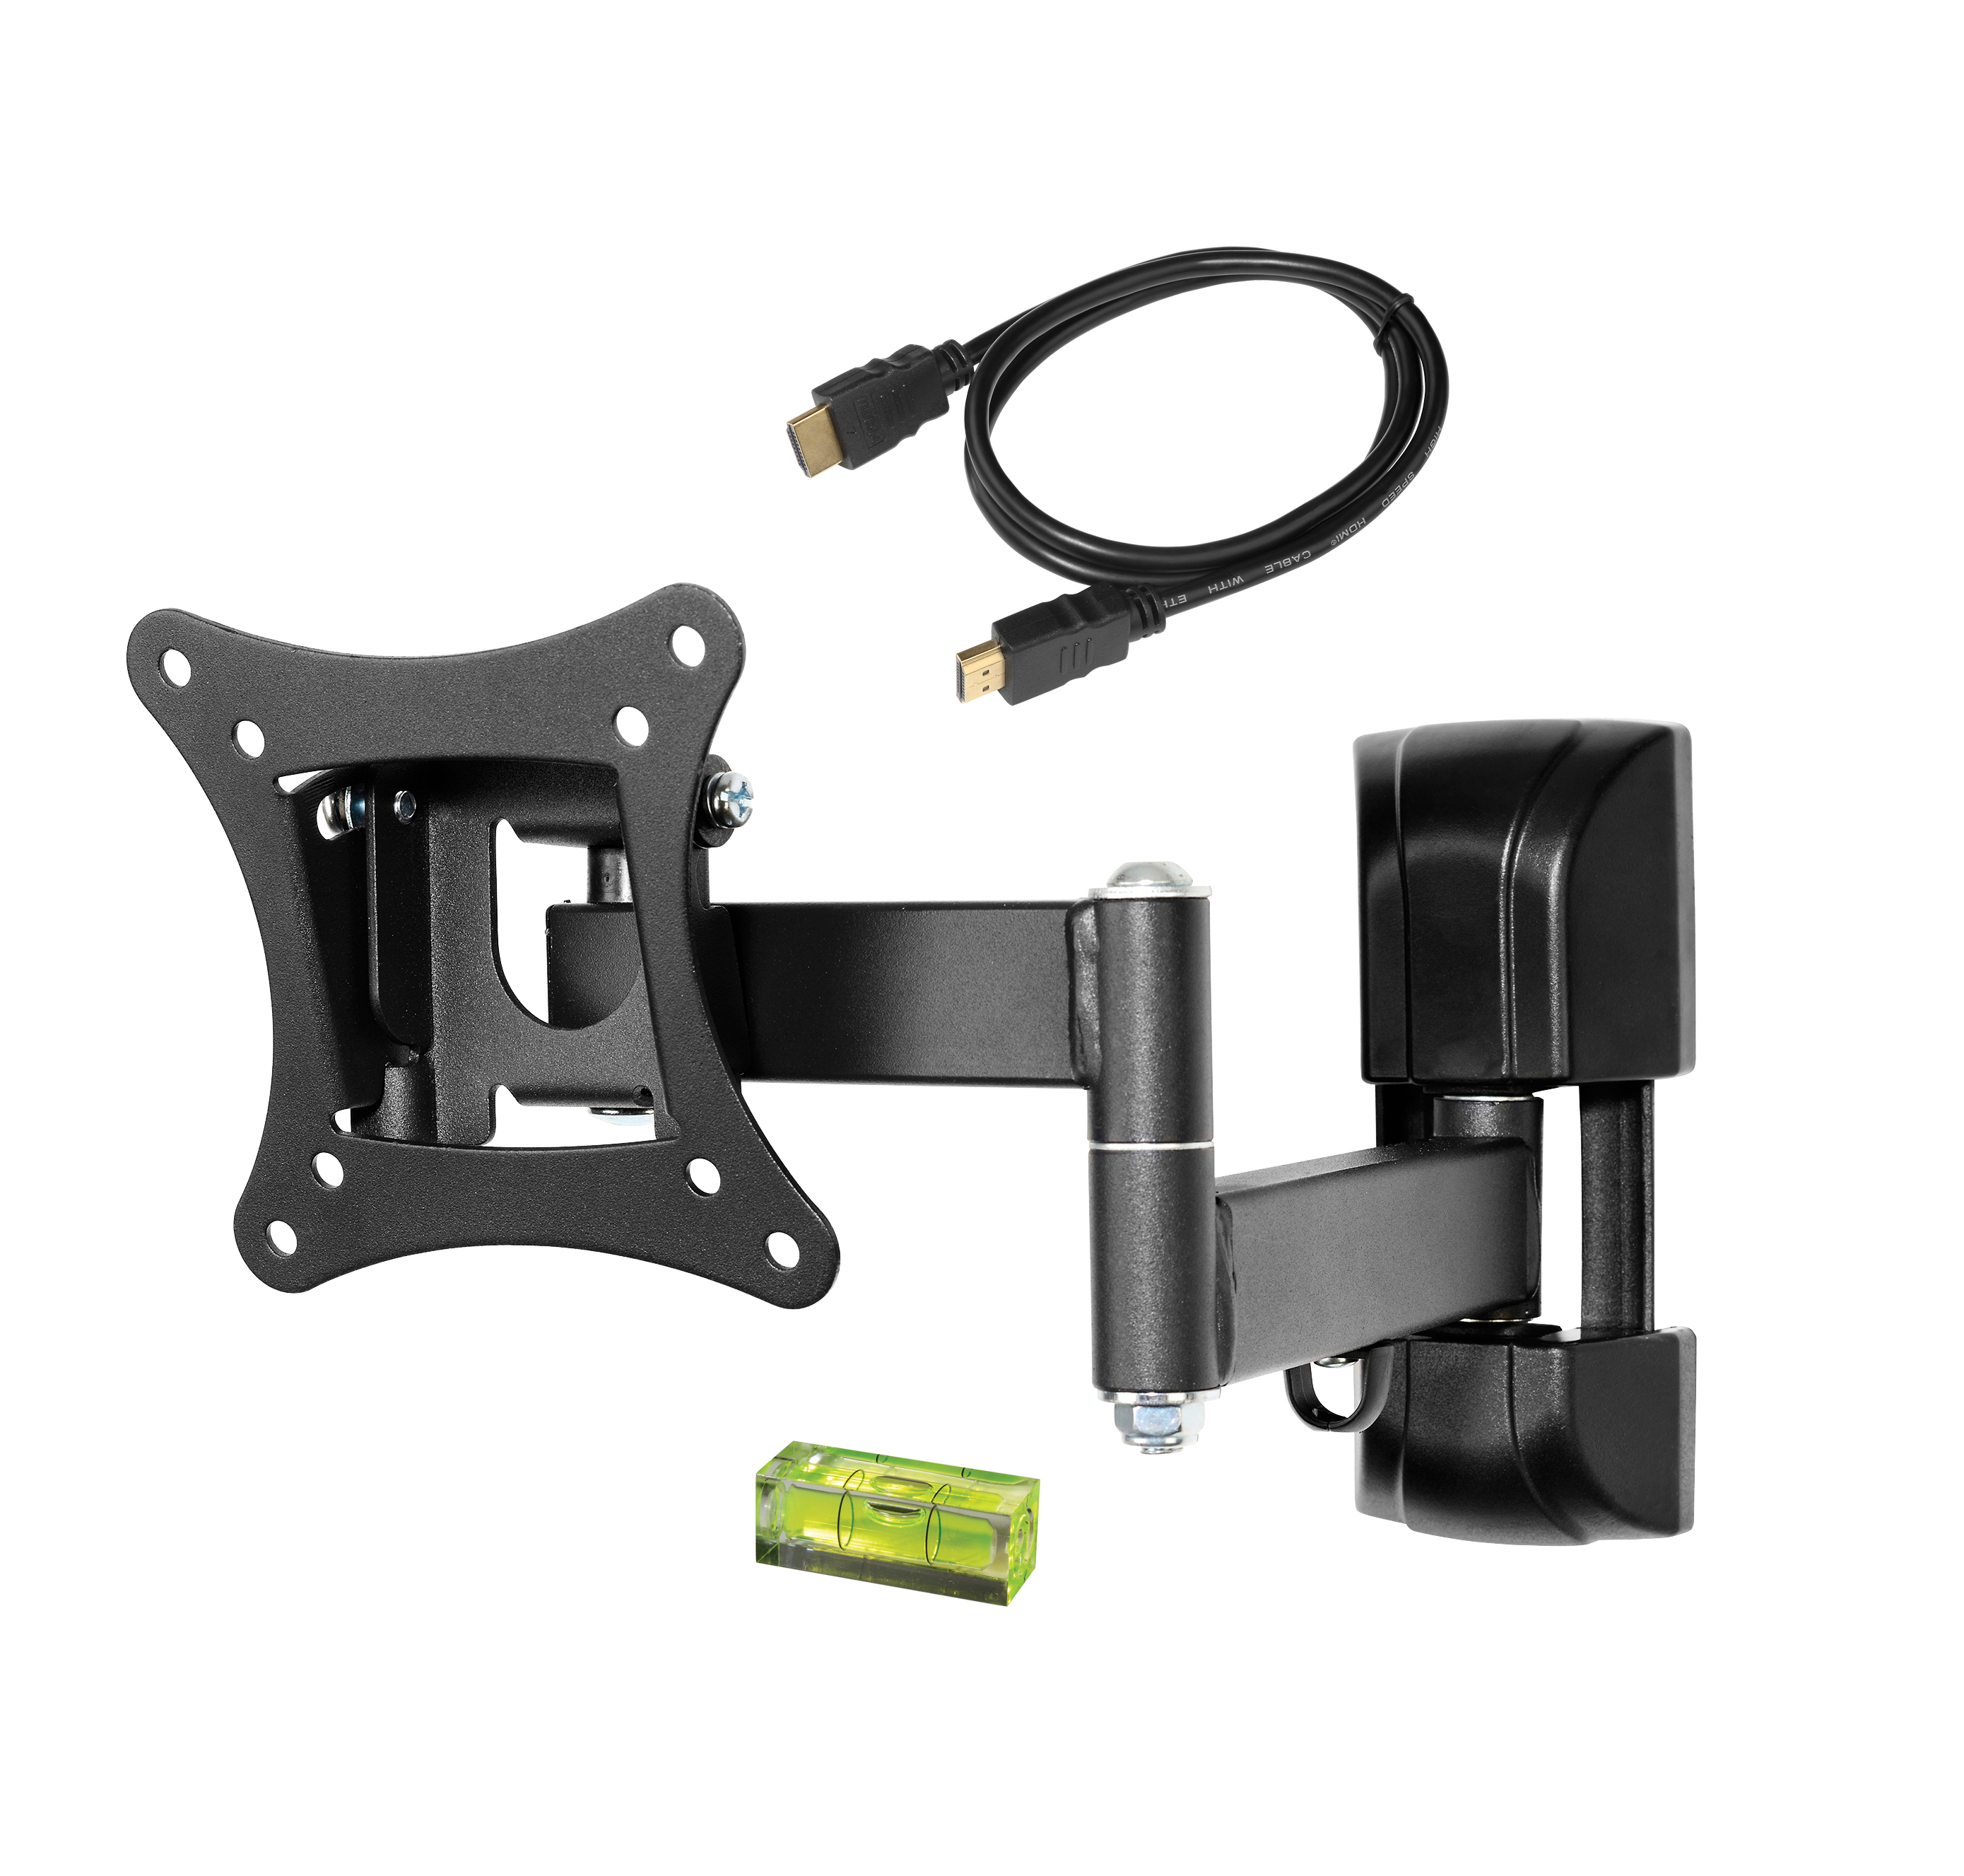 Full-Motion Tilting Wall Mount